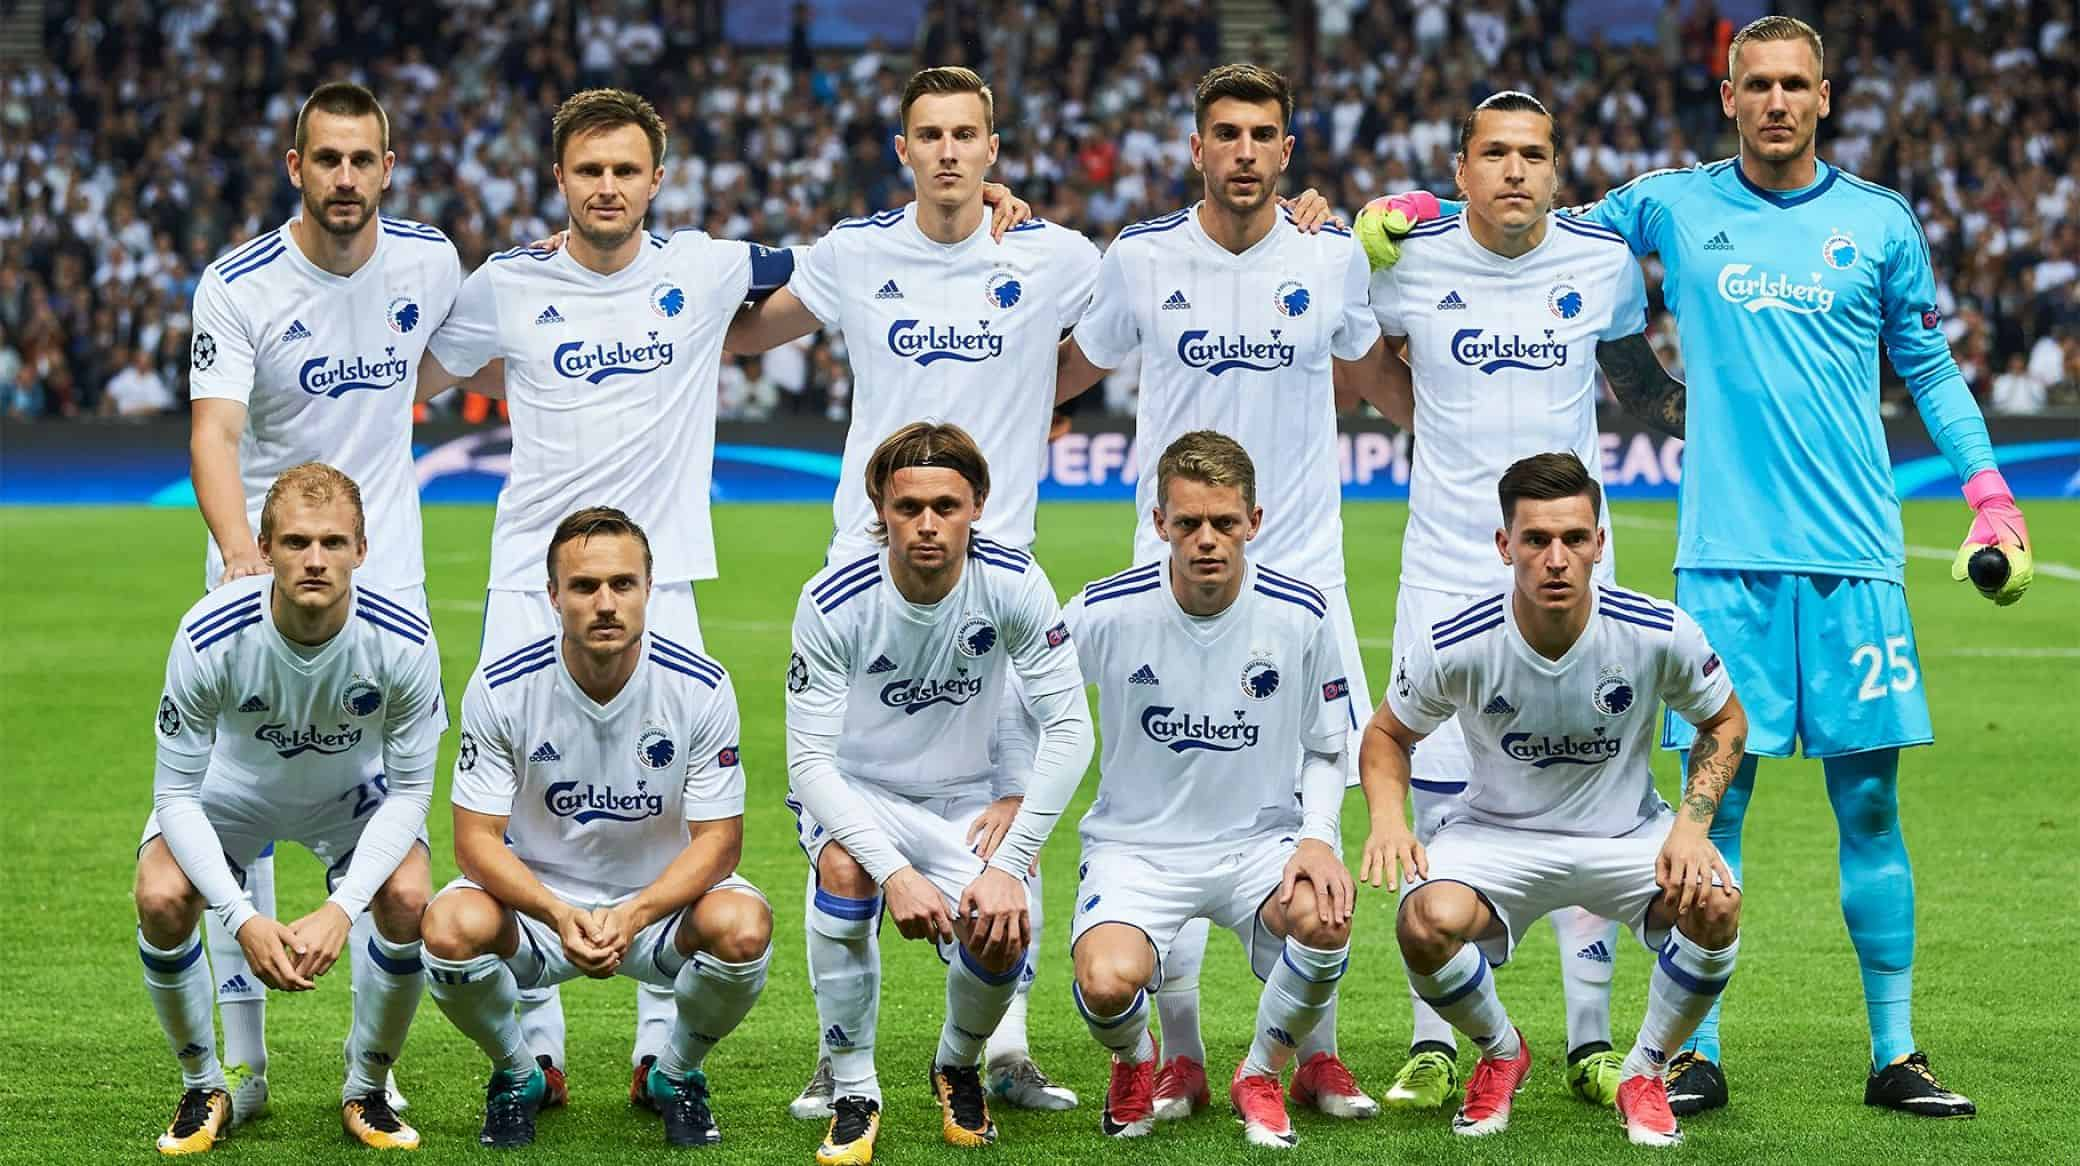 kobenhavn football team